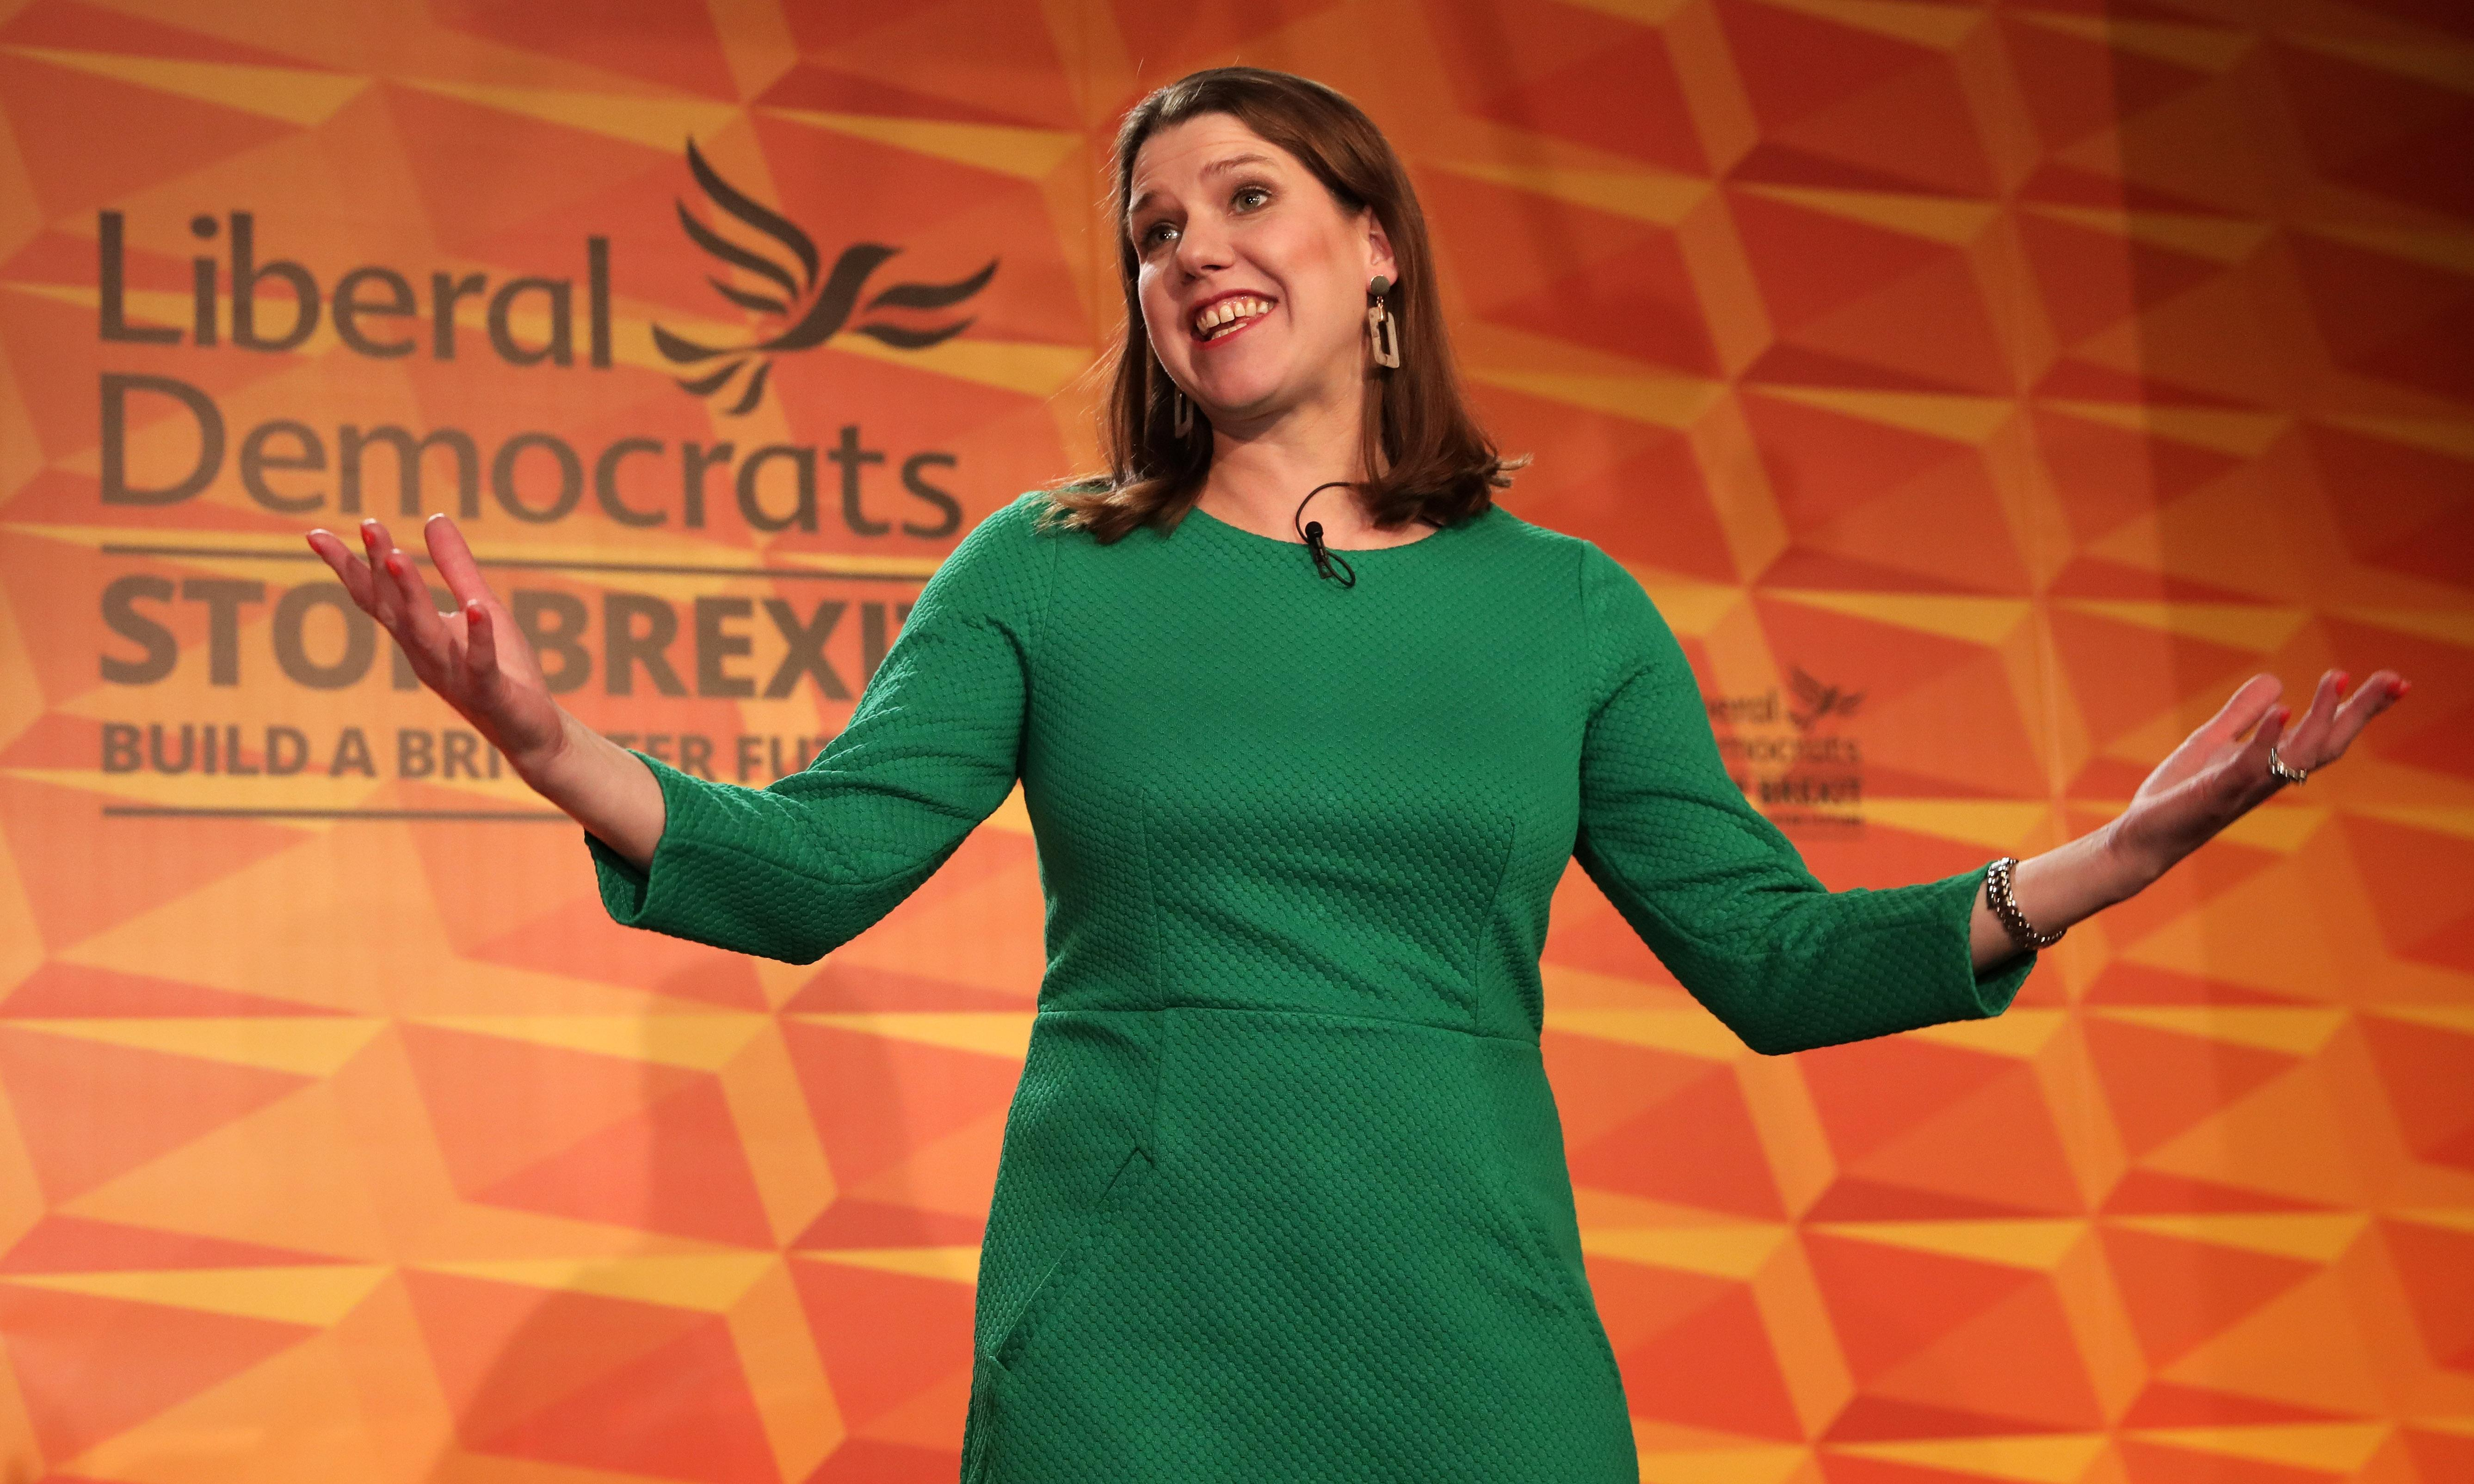 The Guardian view on the Lib Dem manifesto: missing the moderate opportunity